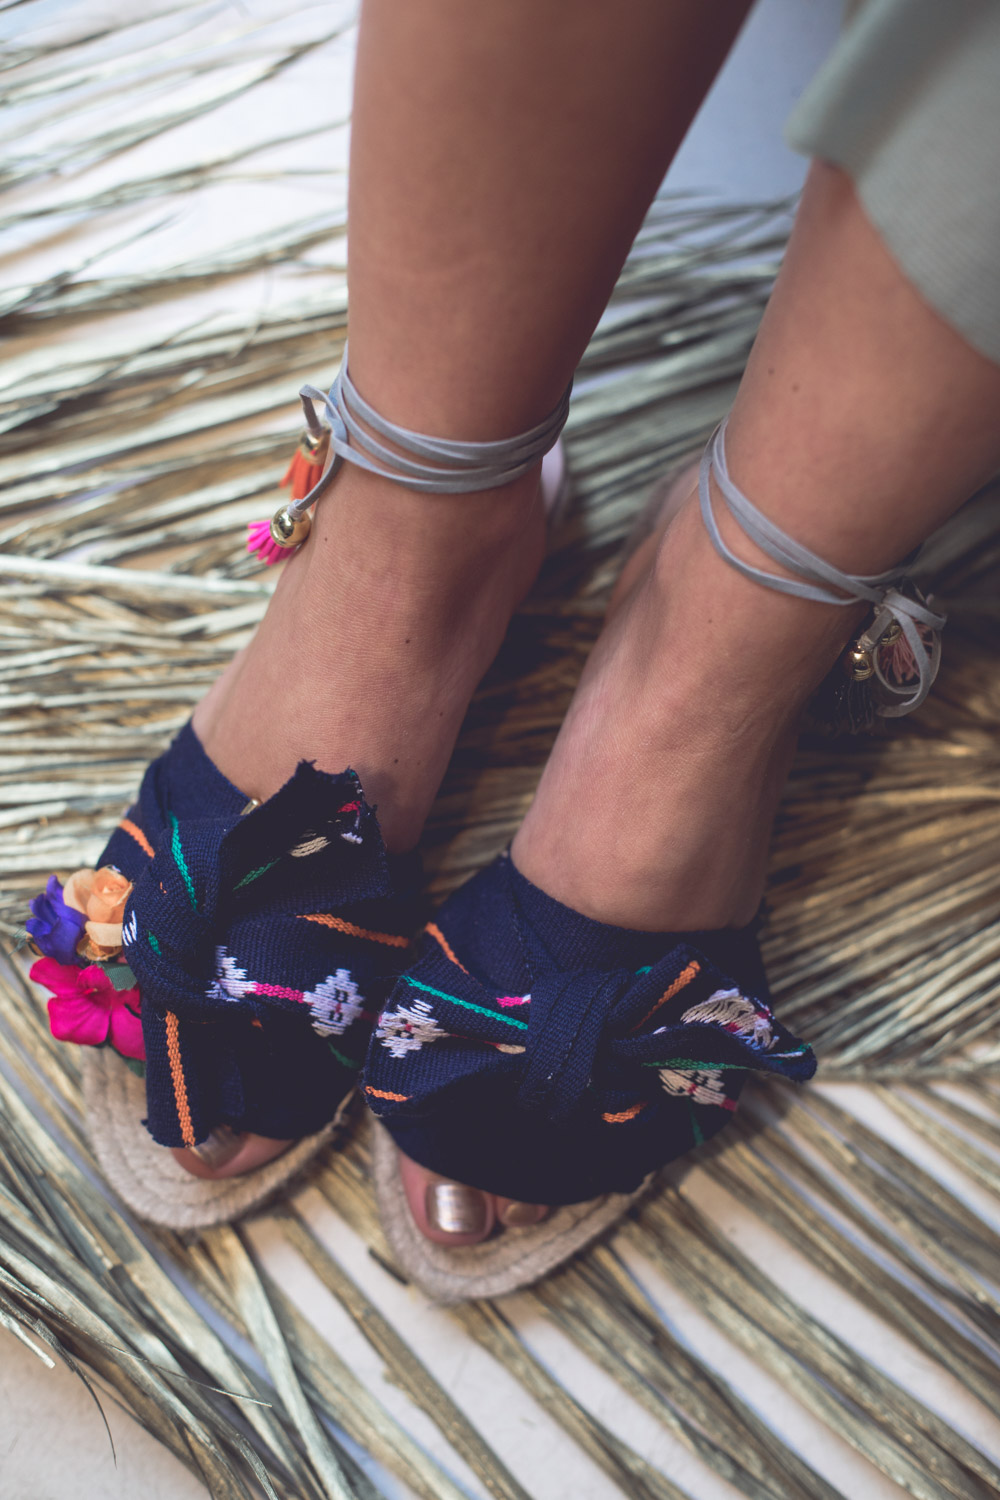 We-Are-Flowergirls_Midsummer-Shooting_Espadrilles_Marocco.jpg